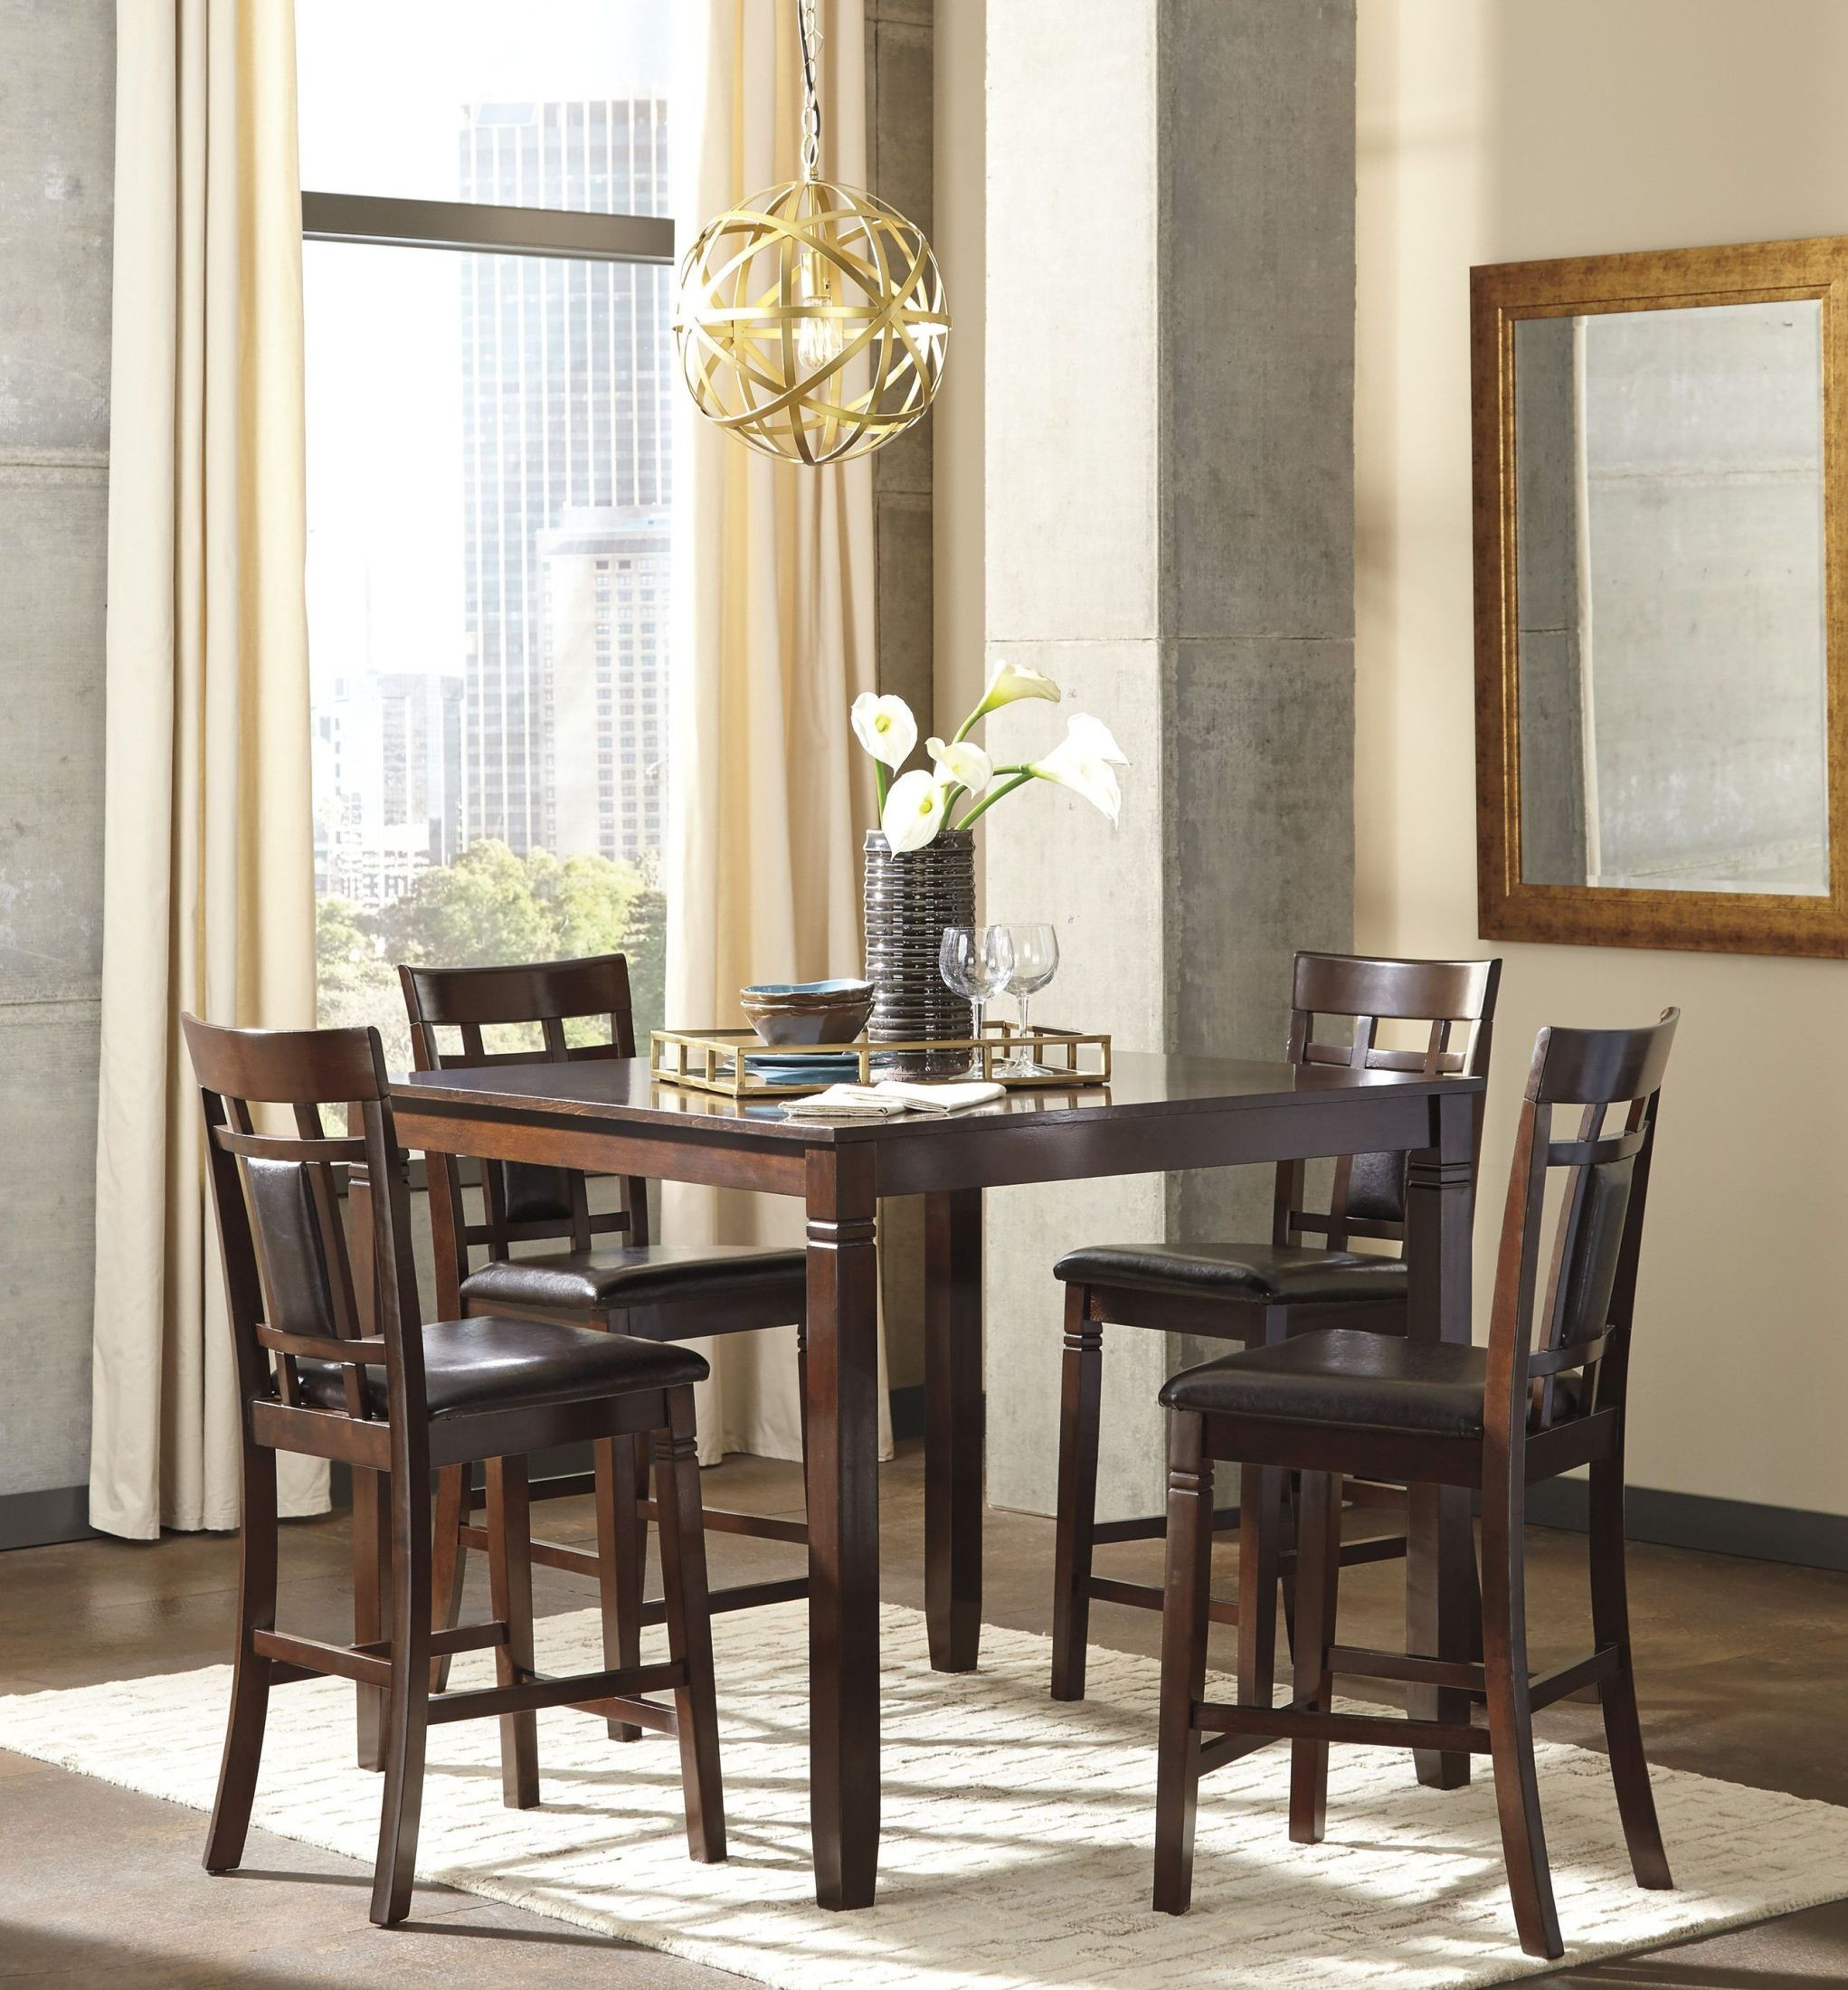 Bennox brown 5 piece counter height dining room set from ashley bennox brown 5 piece counter height dining room set bennox brown 5 piece counter height dining room set dzzzfo